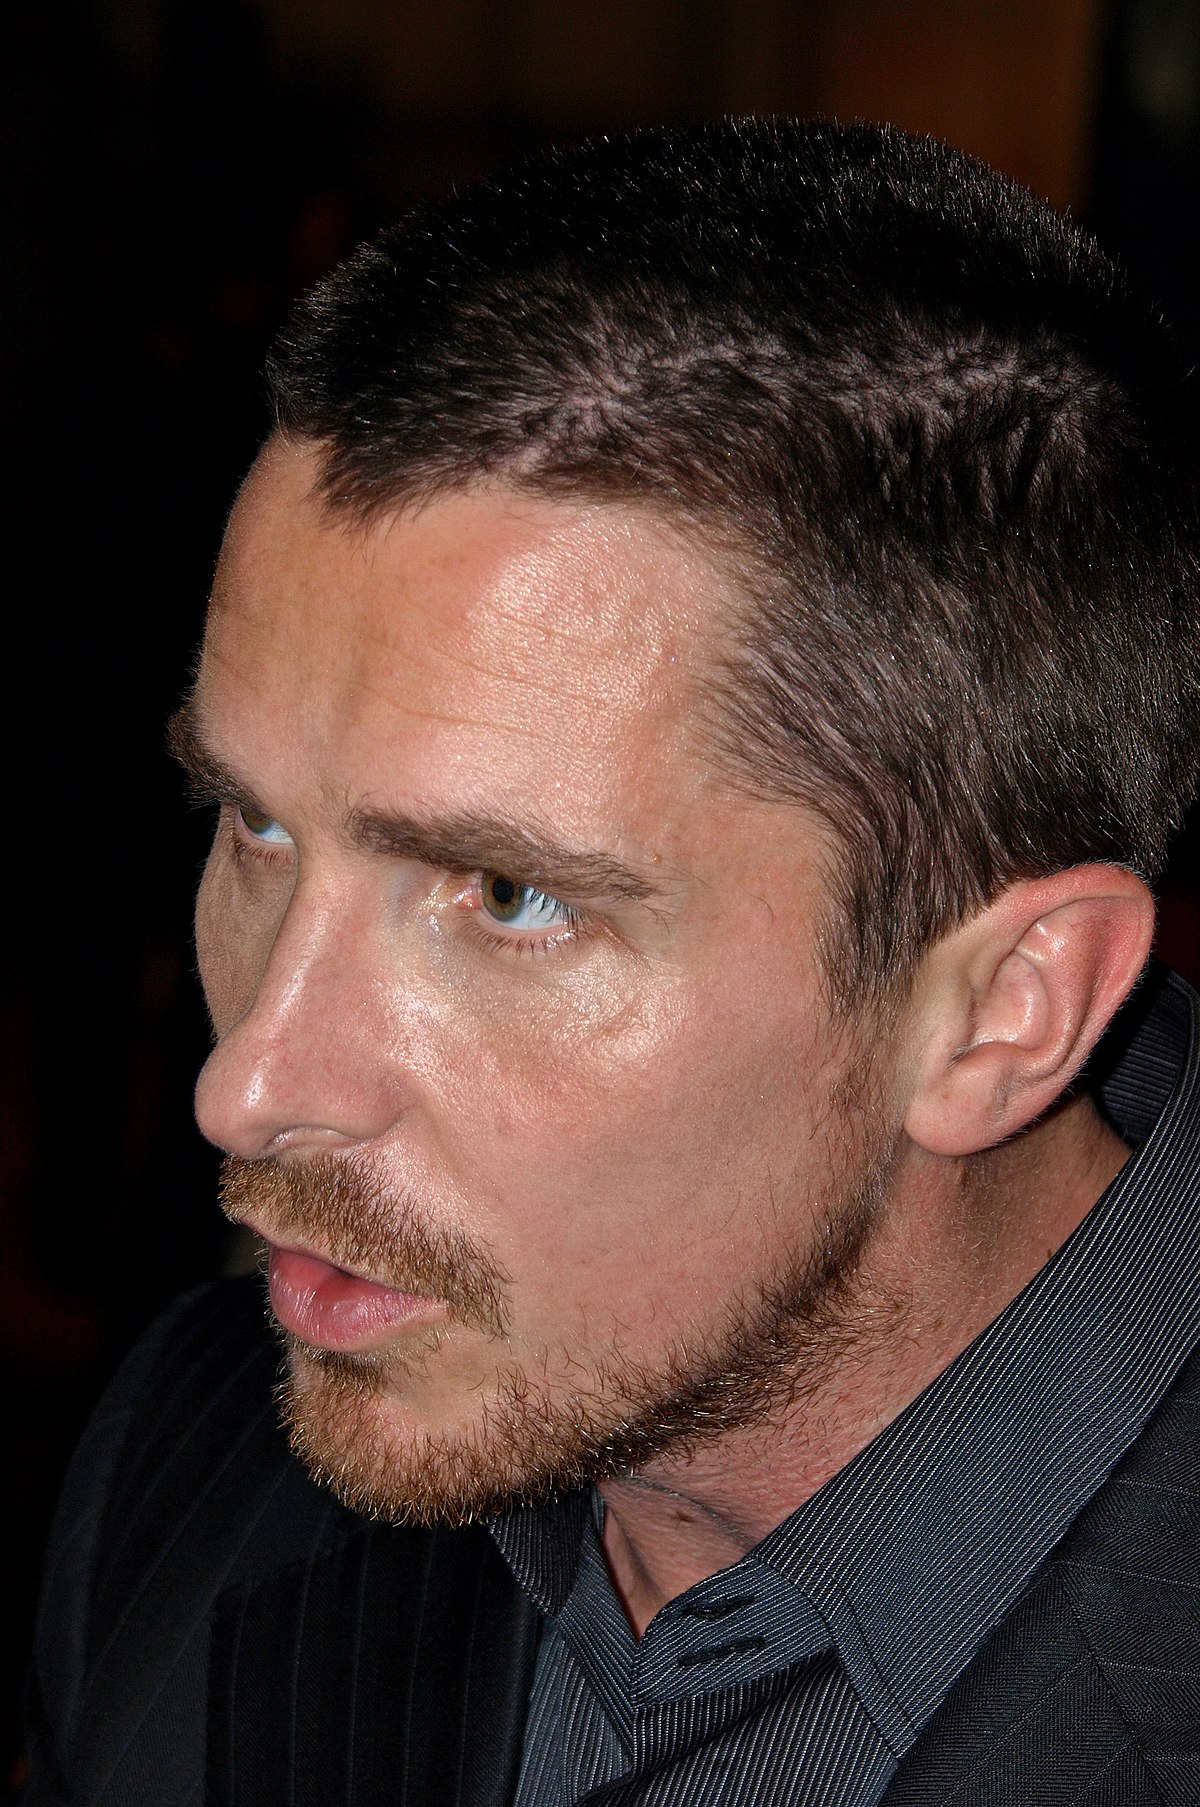 List of awards and nominations received by Christian Bale - Wikipedia Christian Bale